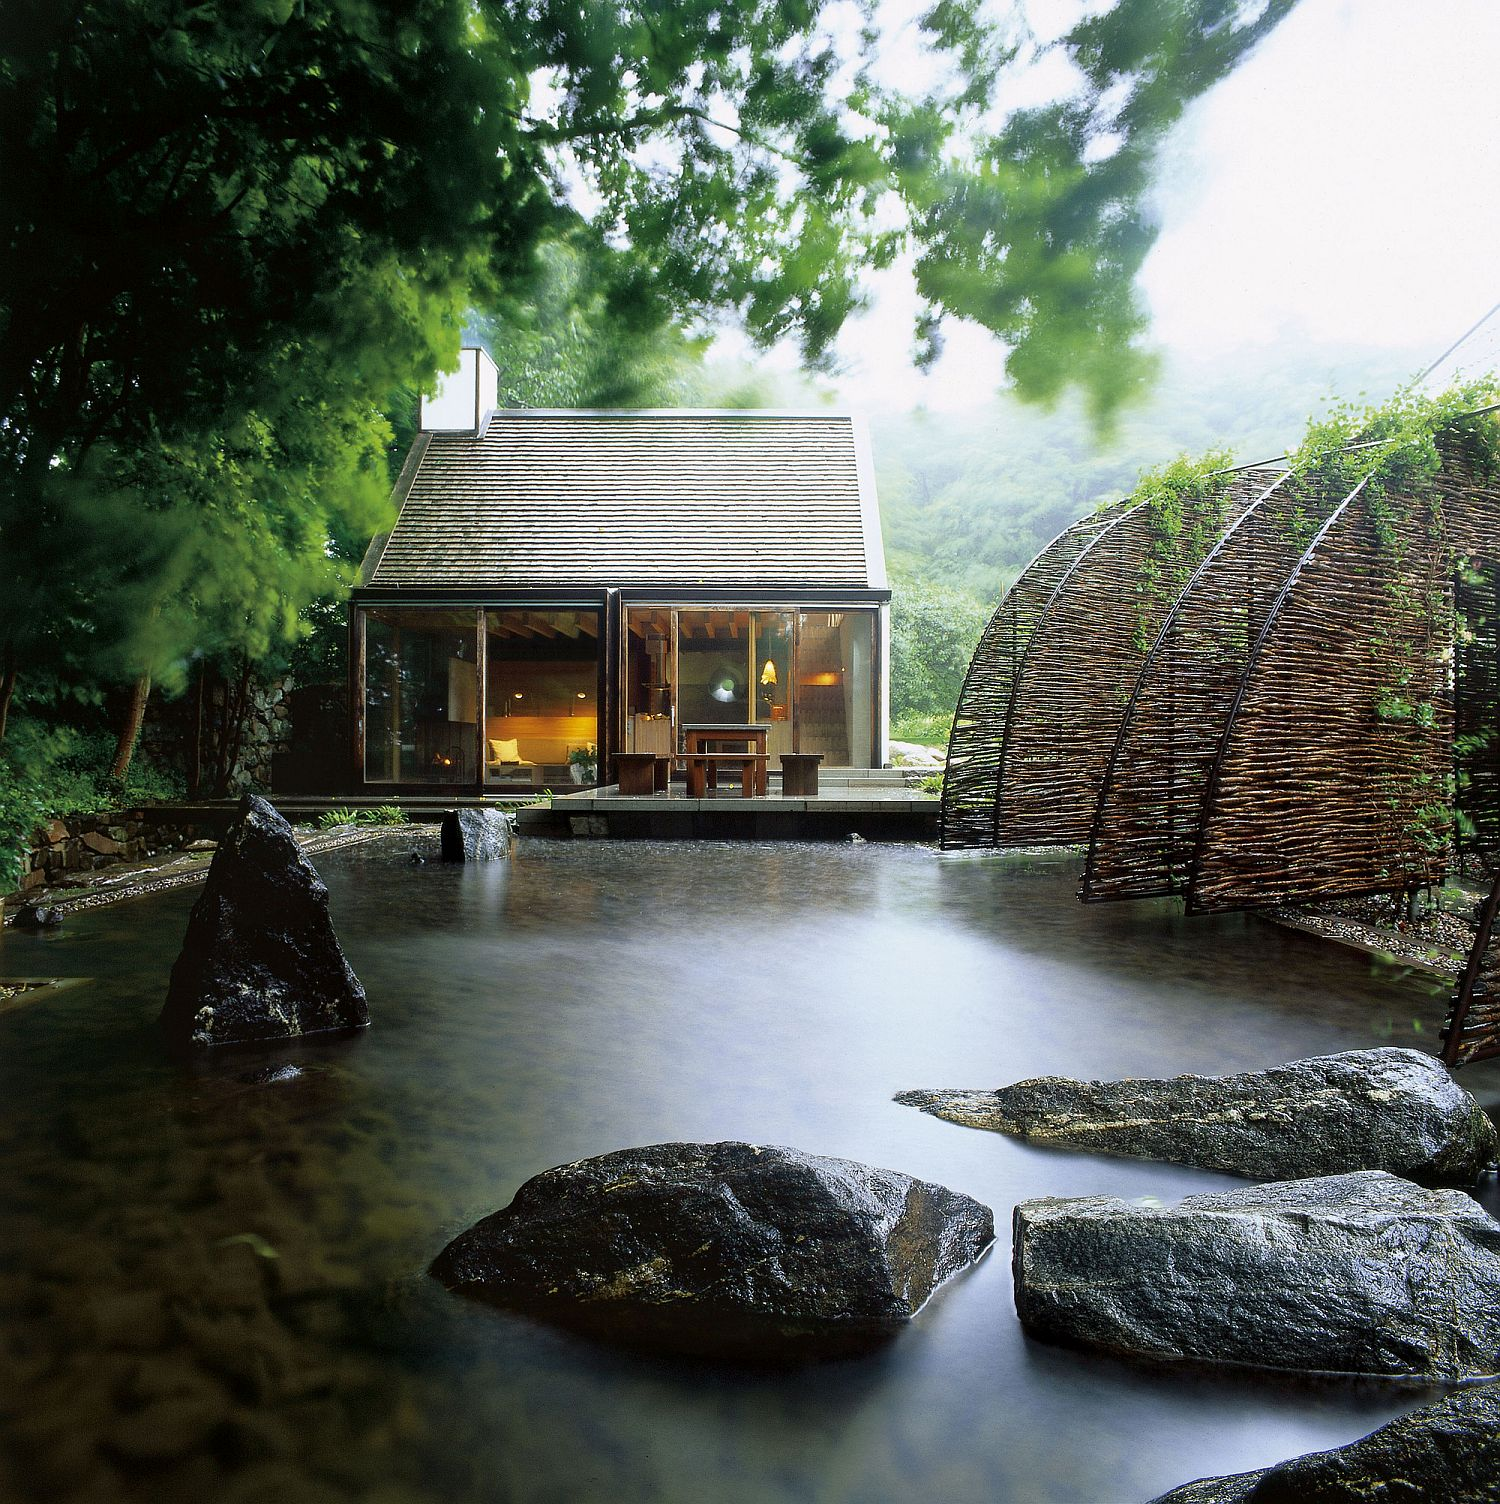 Creek and natural water body around the house enhances its amazing aura